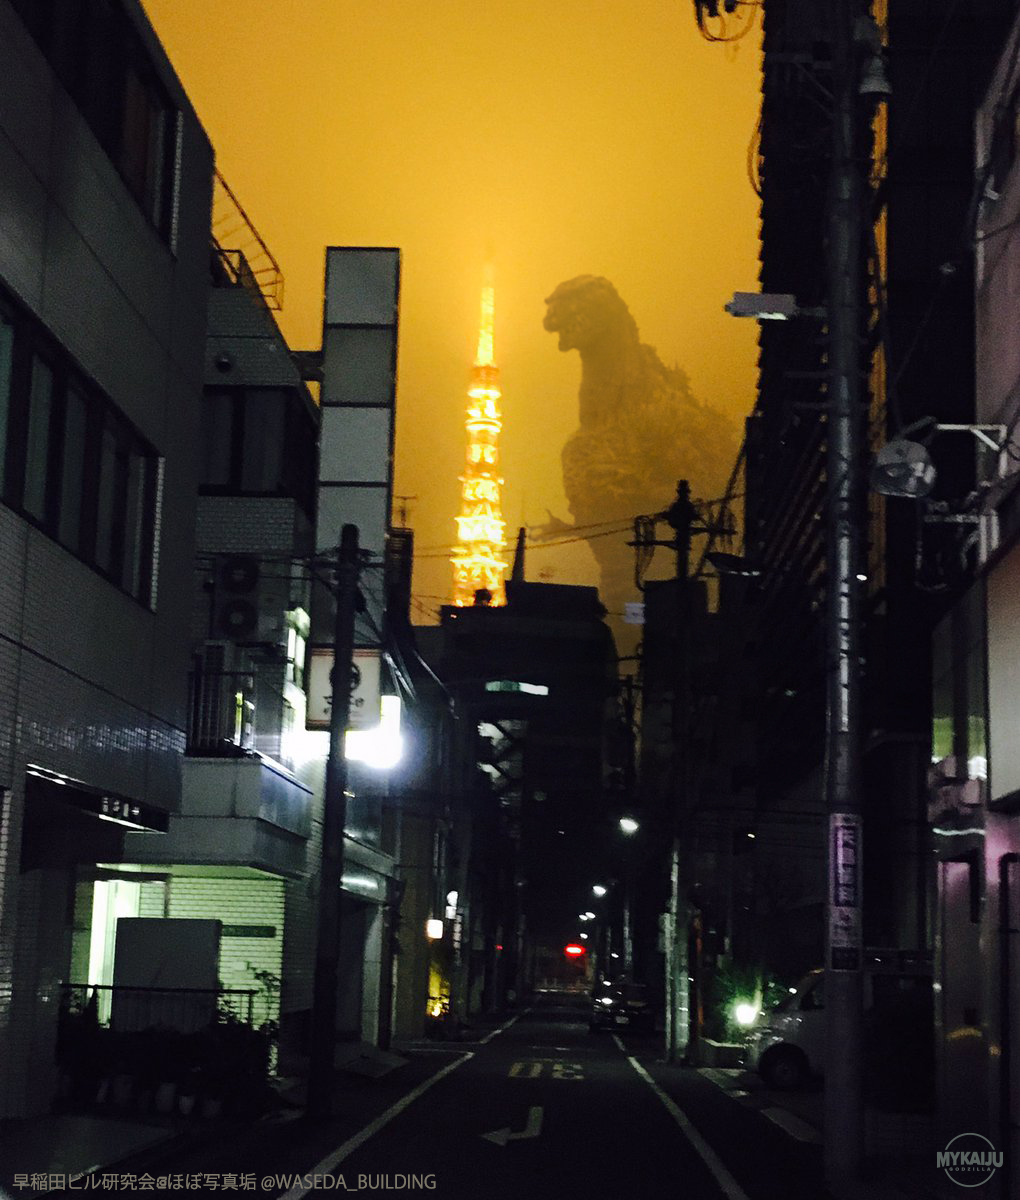 Shin Godzilla in the night